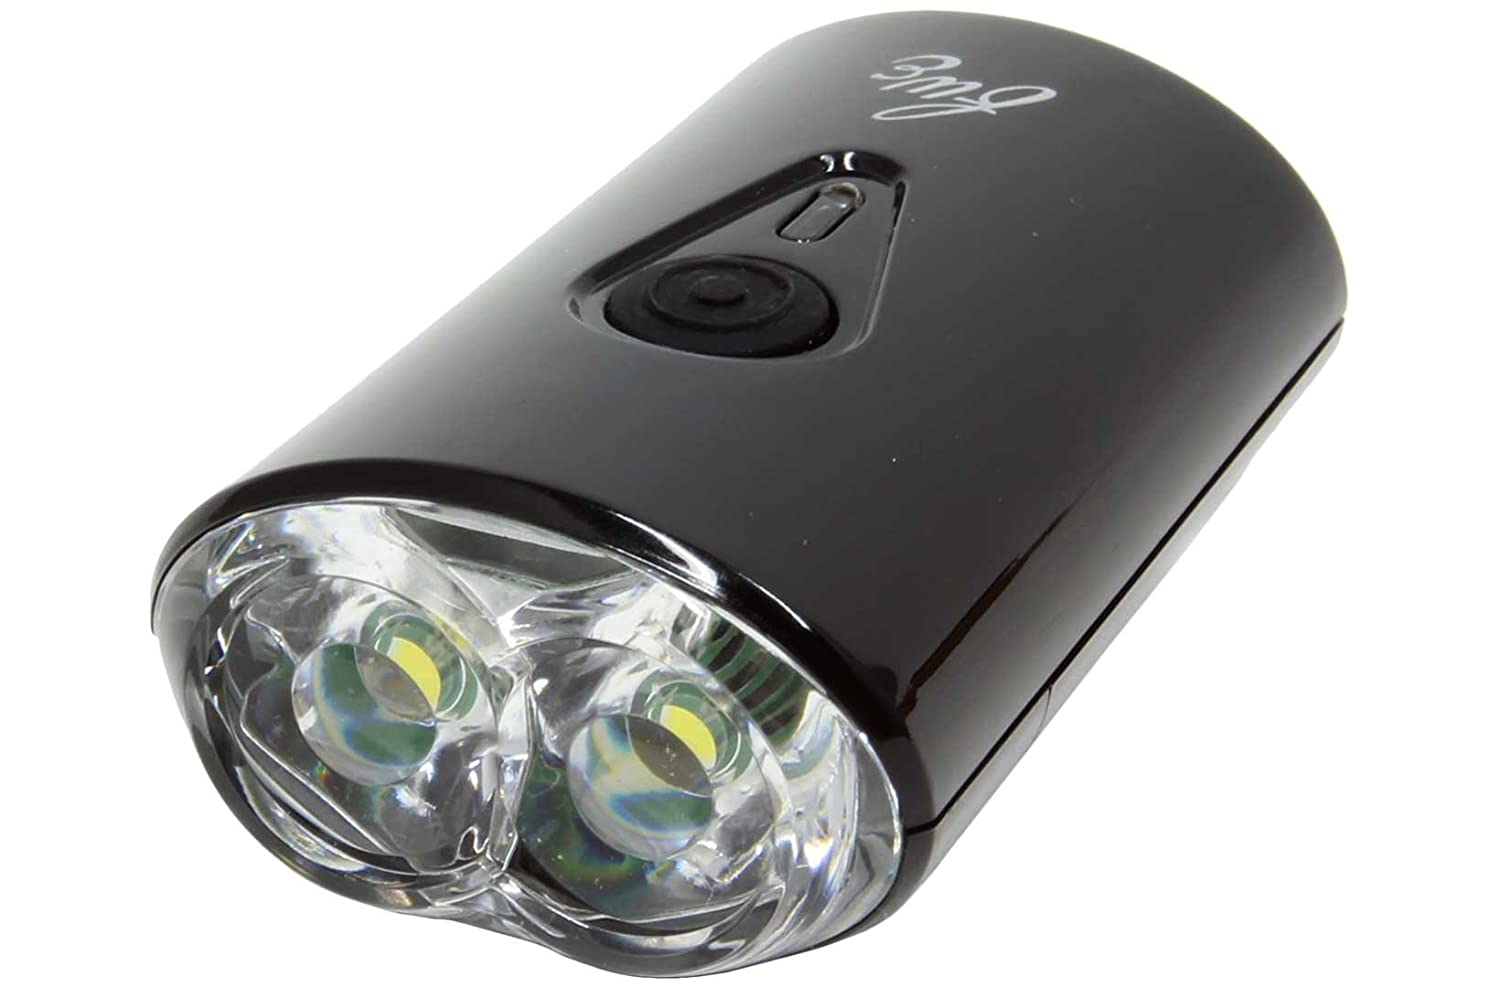 FWE 80 Lumen USB Re-chargeable LED Front Light From Evans Cycles